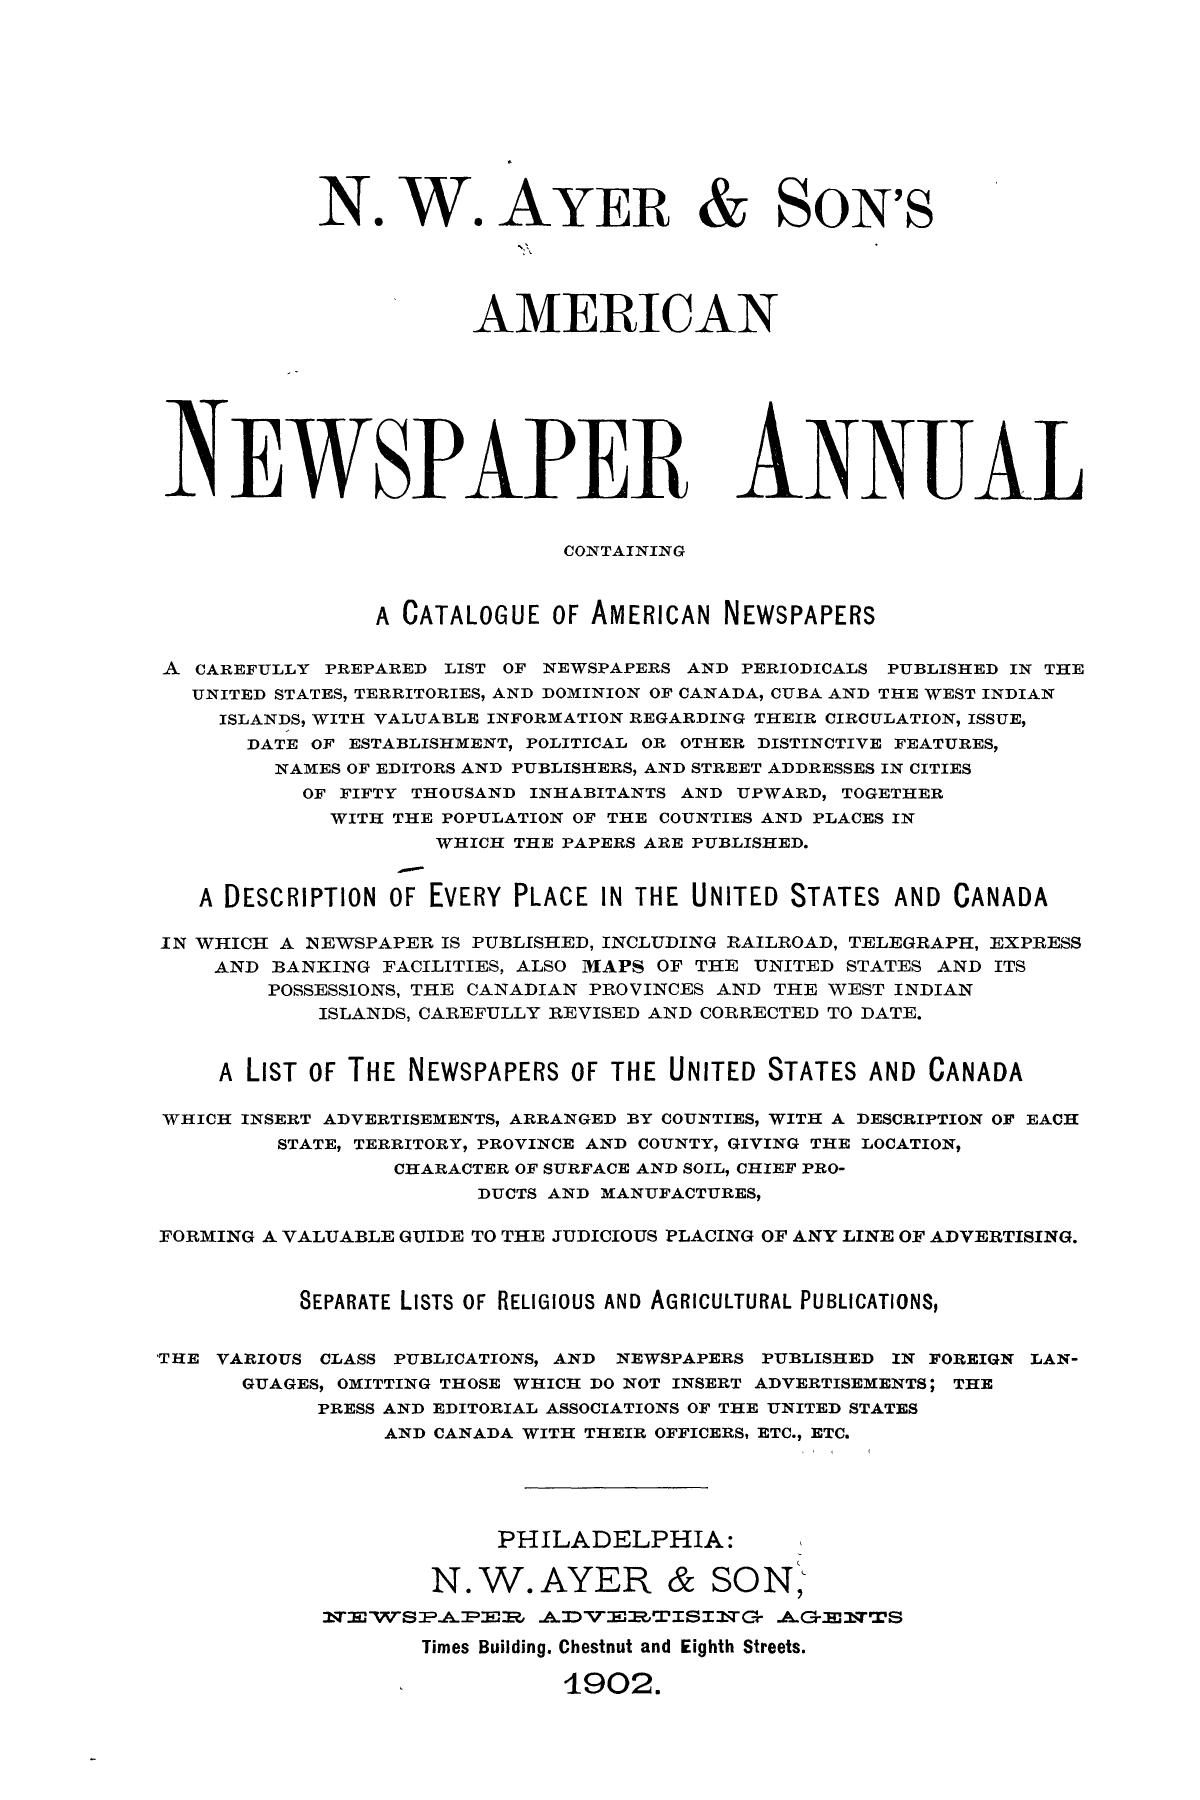 N. W. Ayer & Son's American Newspaper Annual: containing a Catalogue of American Newspapers, a List of All Newspapers of the United States and Canada, 1902, Volume 2                                                                                                      Title Page